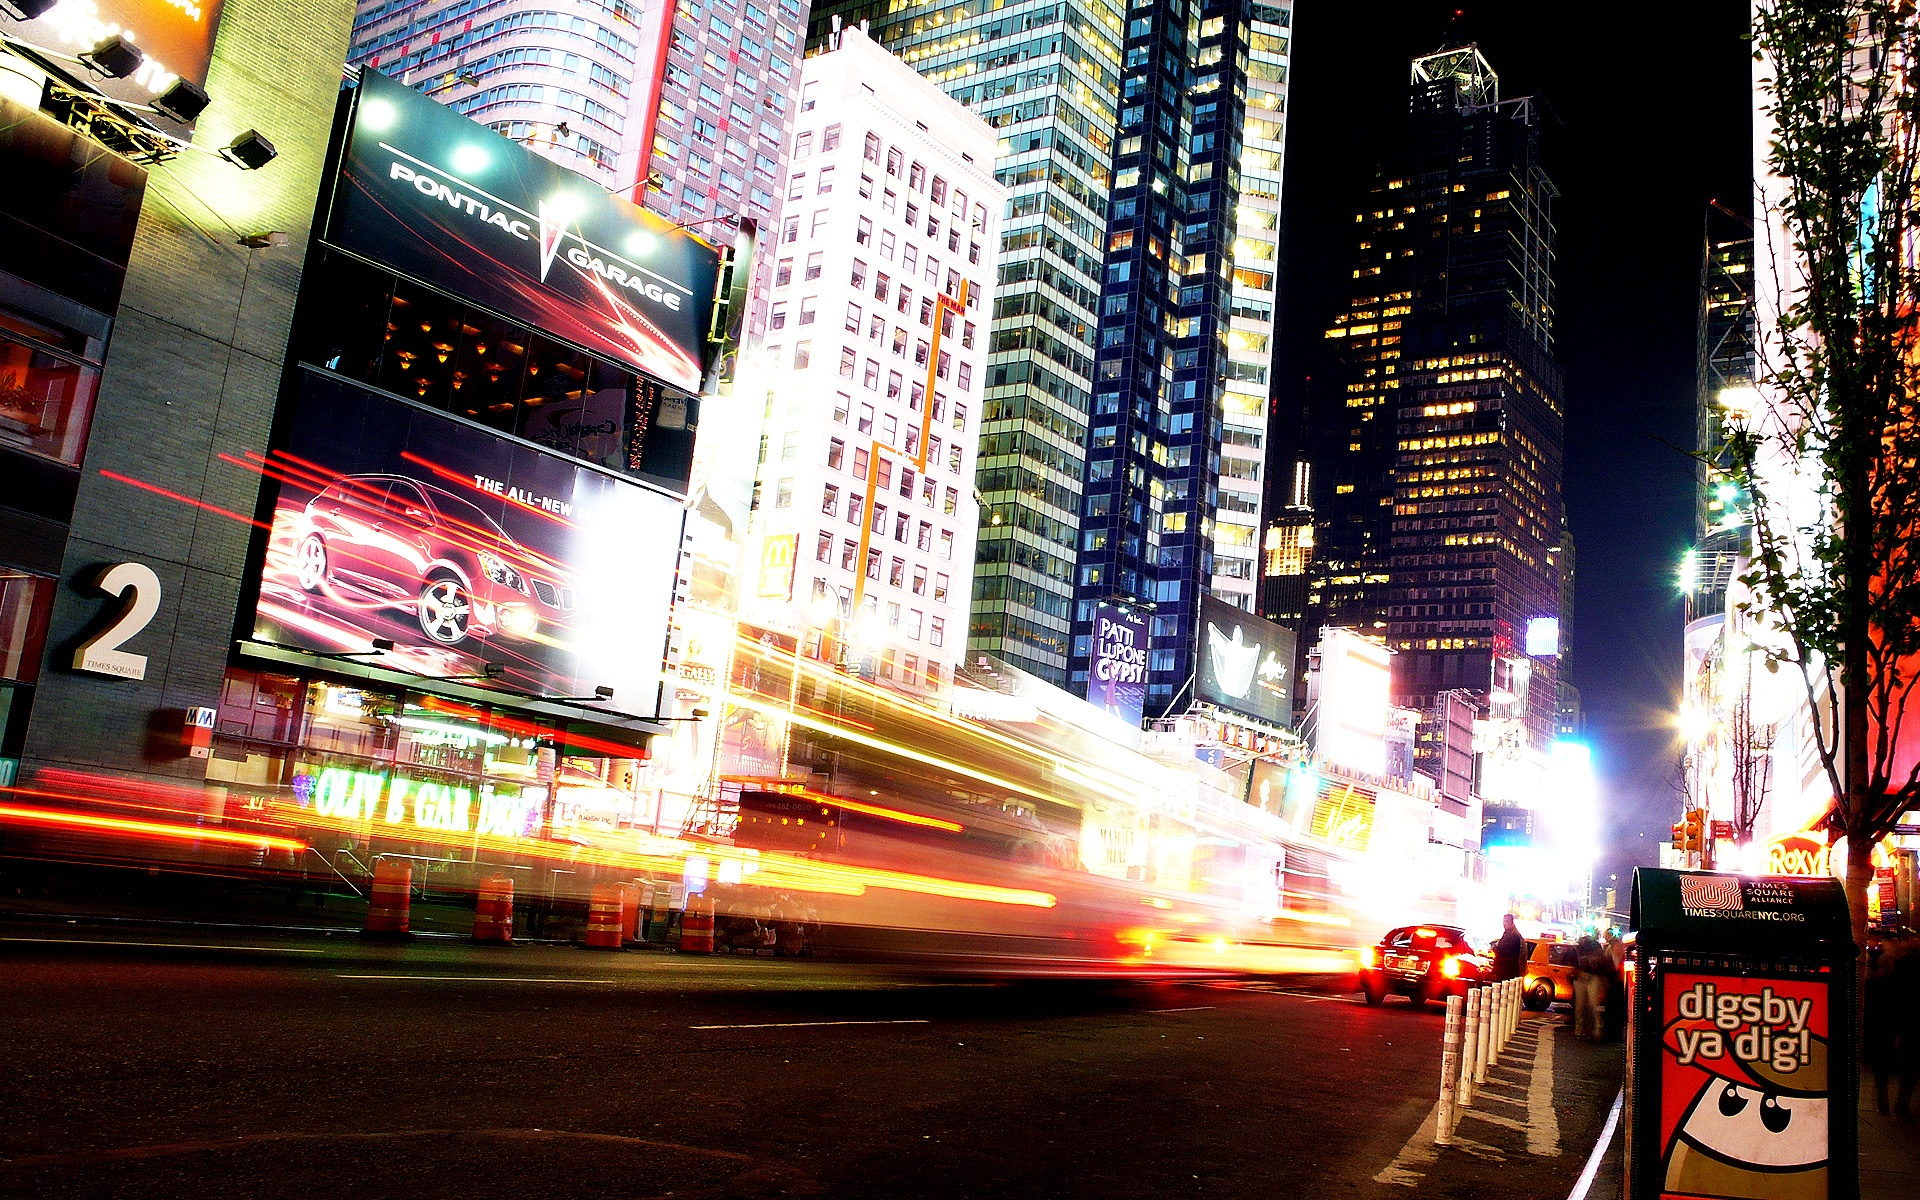 Manhattan New York City Wallpapers in jpg format for free